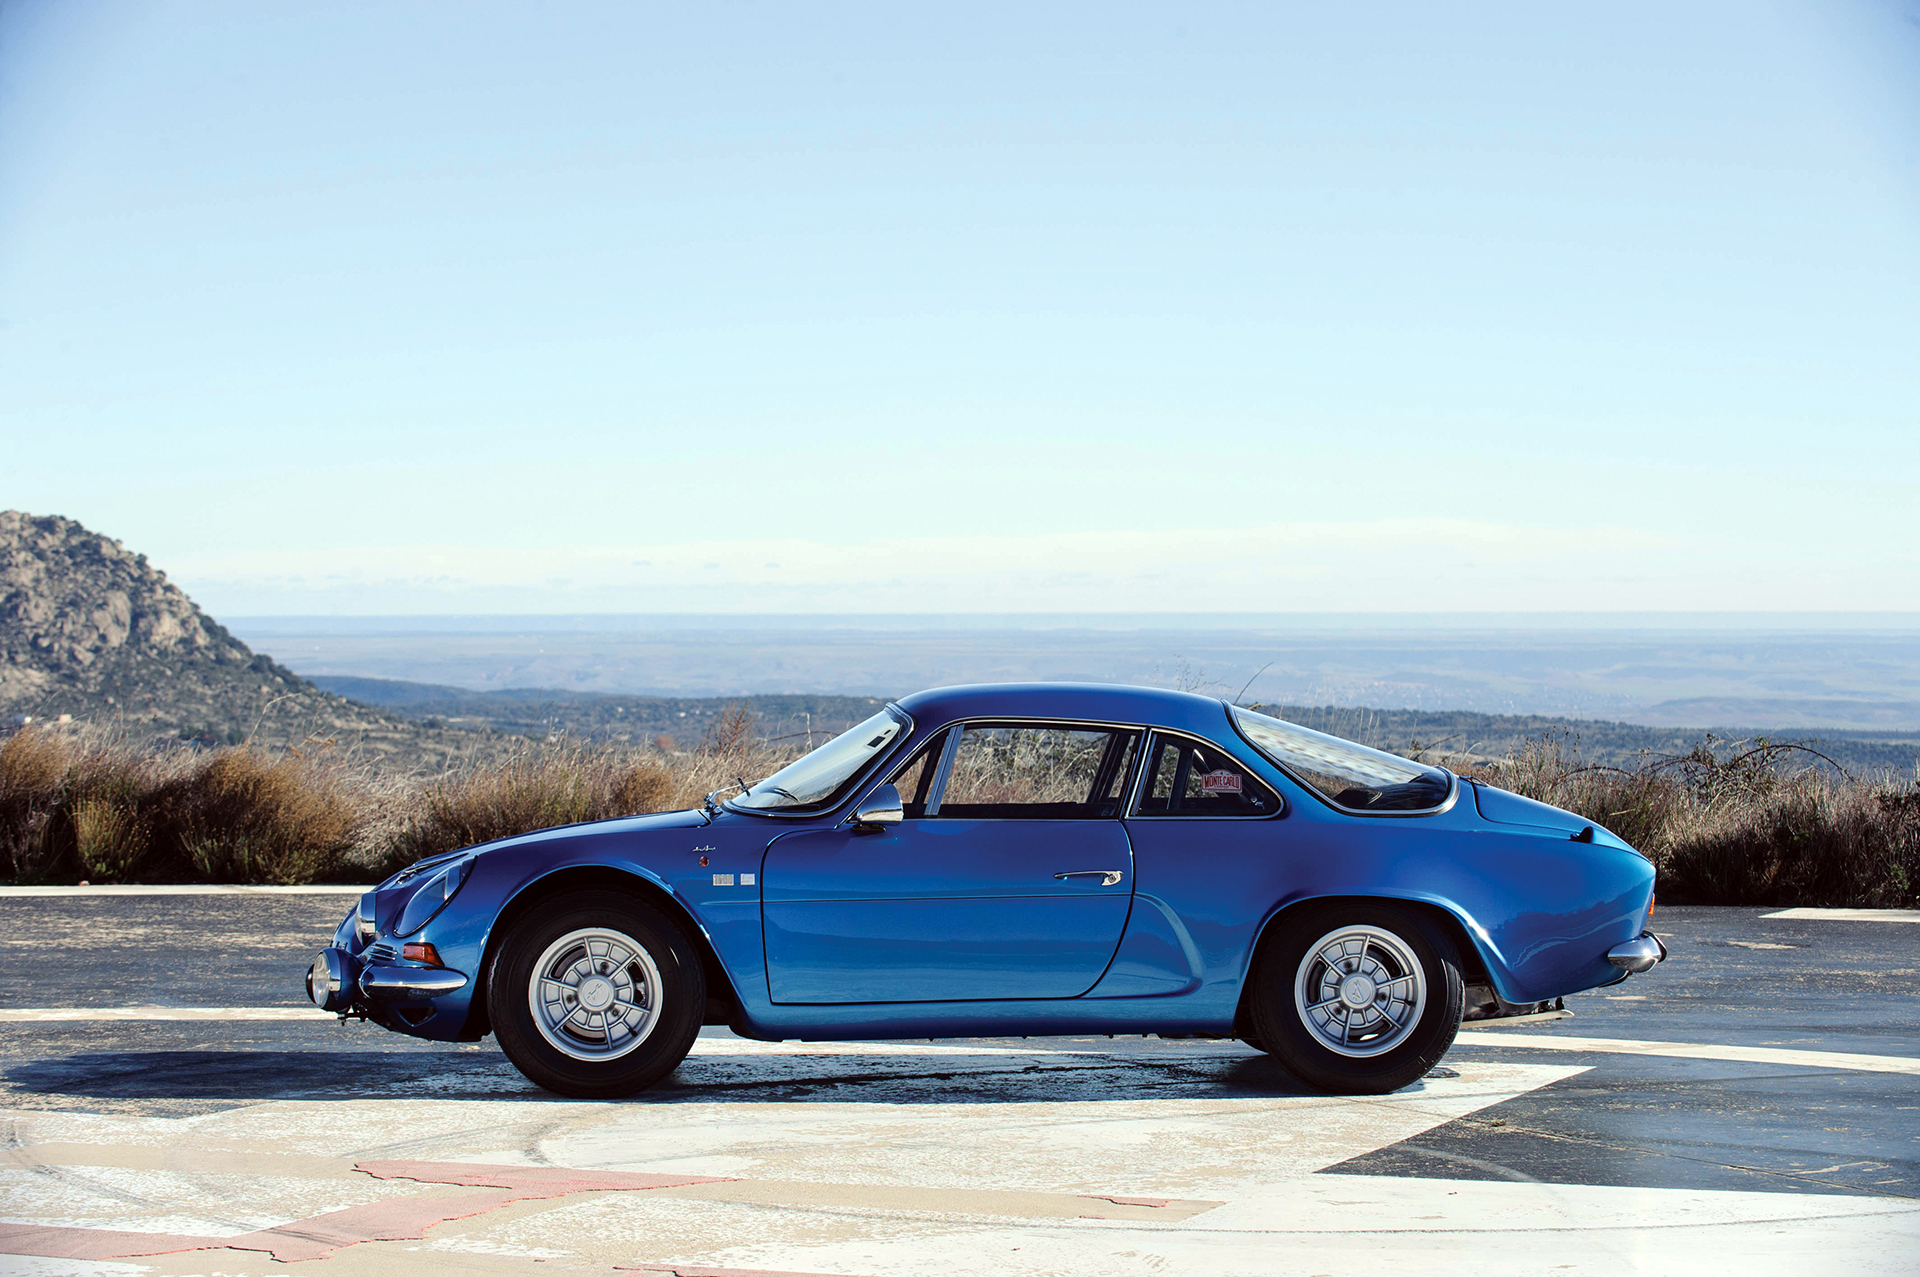 Alpine A110 1600S - profil / side-face - Photo Tom Wood 2015 Courtesy of RM Auctions